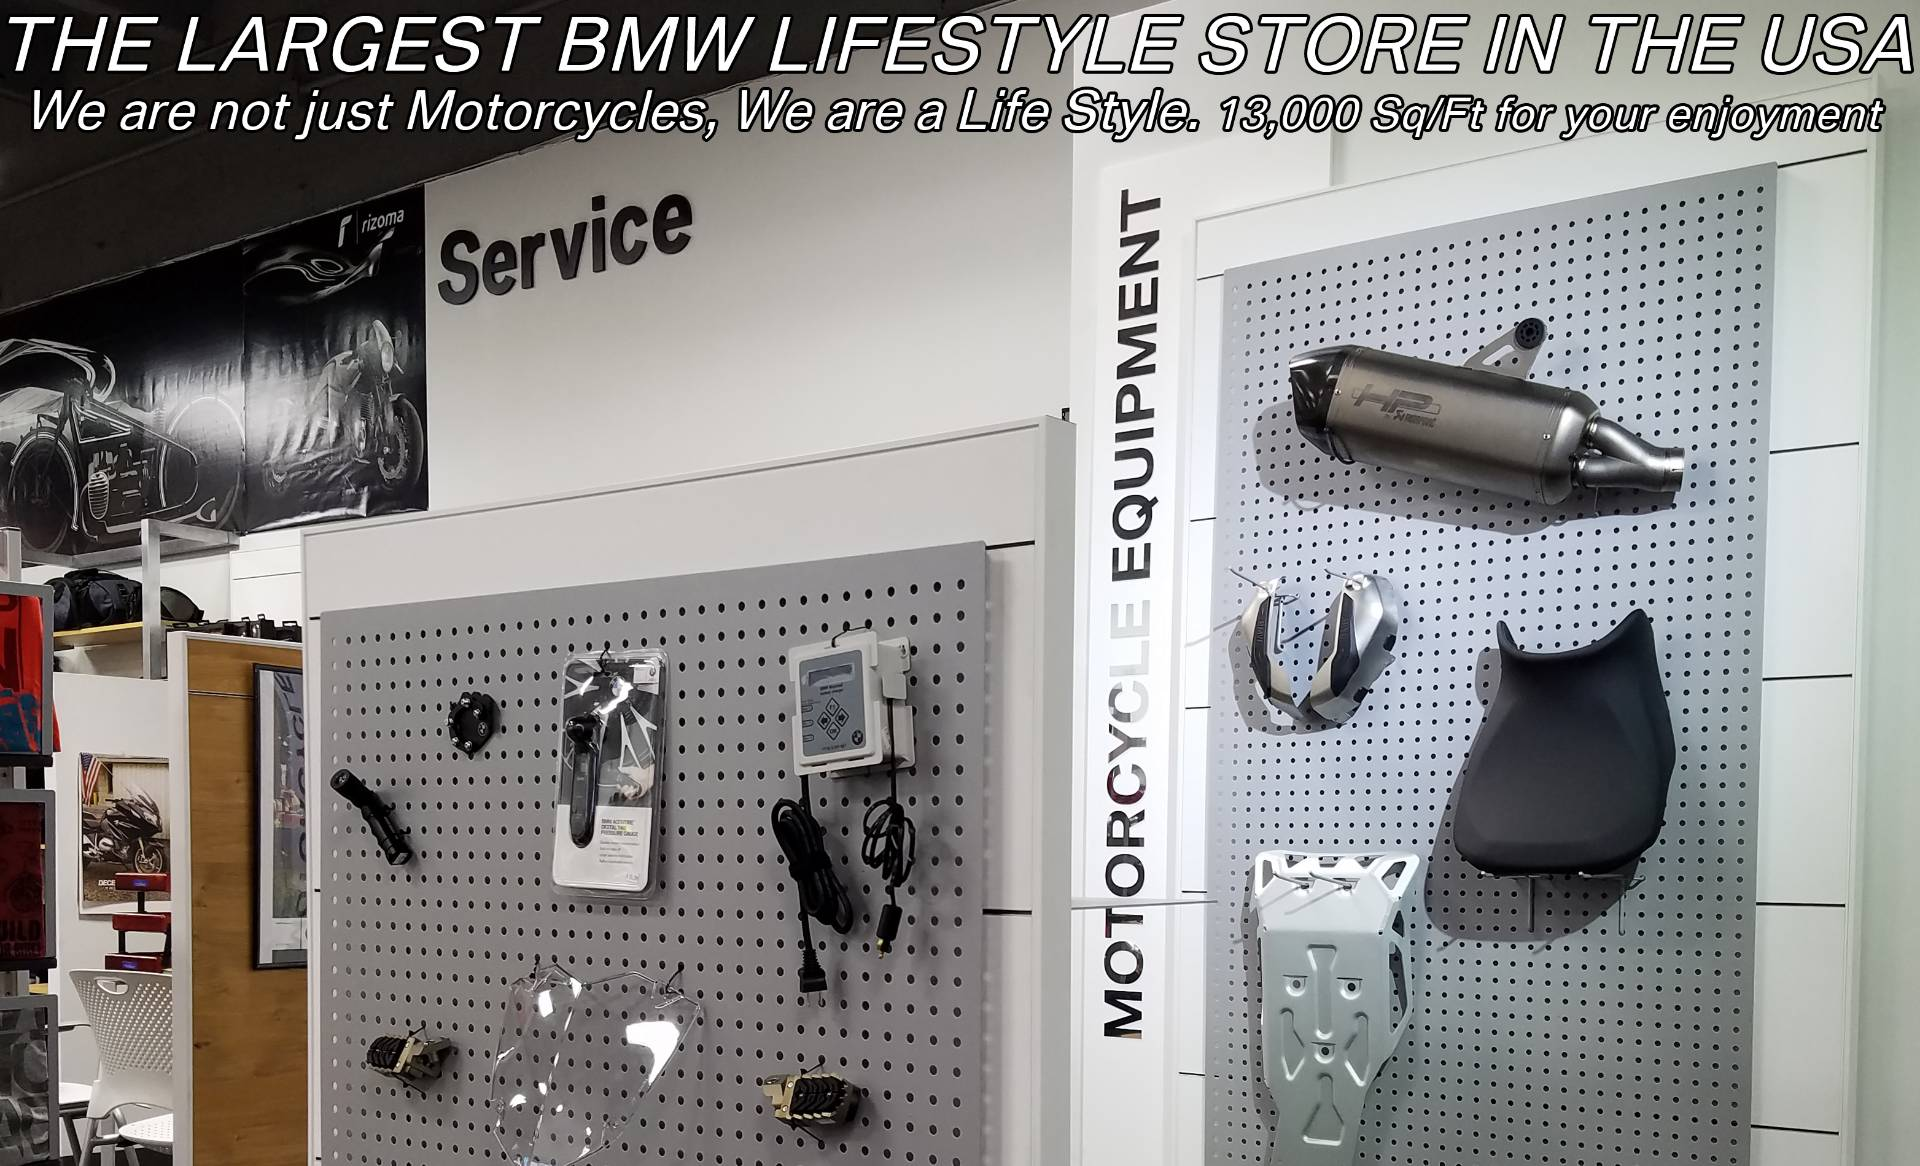 New 2017 BMW R nineT Brushed aluminum For Sale, BMW R nineT Visible Weld For Sale, BMW Motorcycle R nine T, new BMW RnineT, New BMW Motorcycle